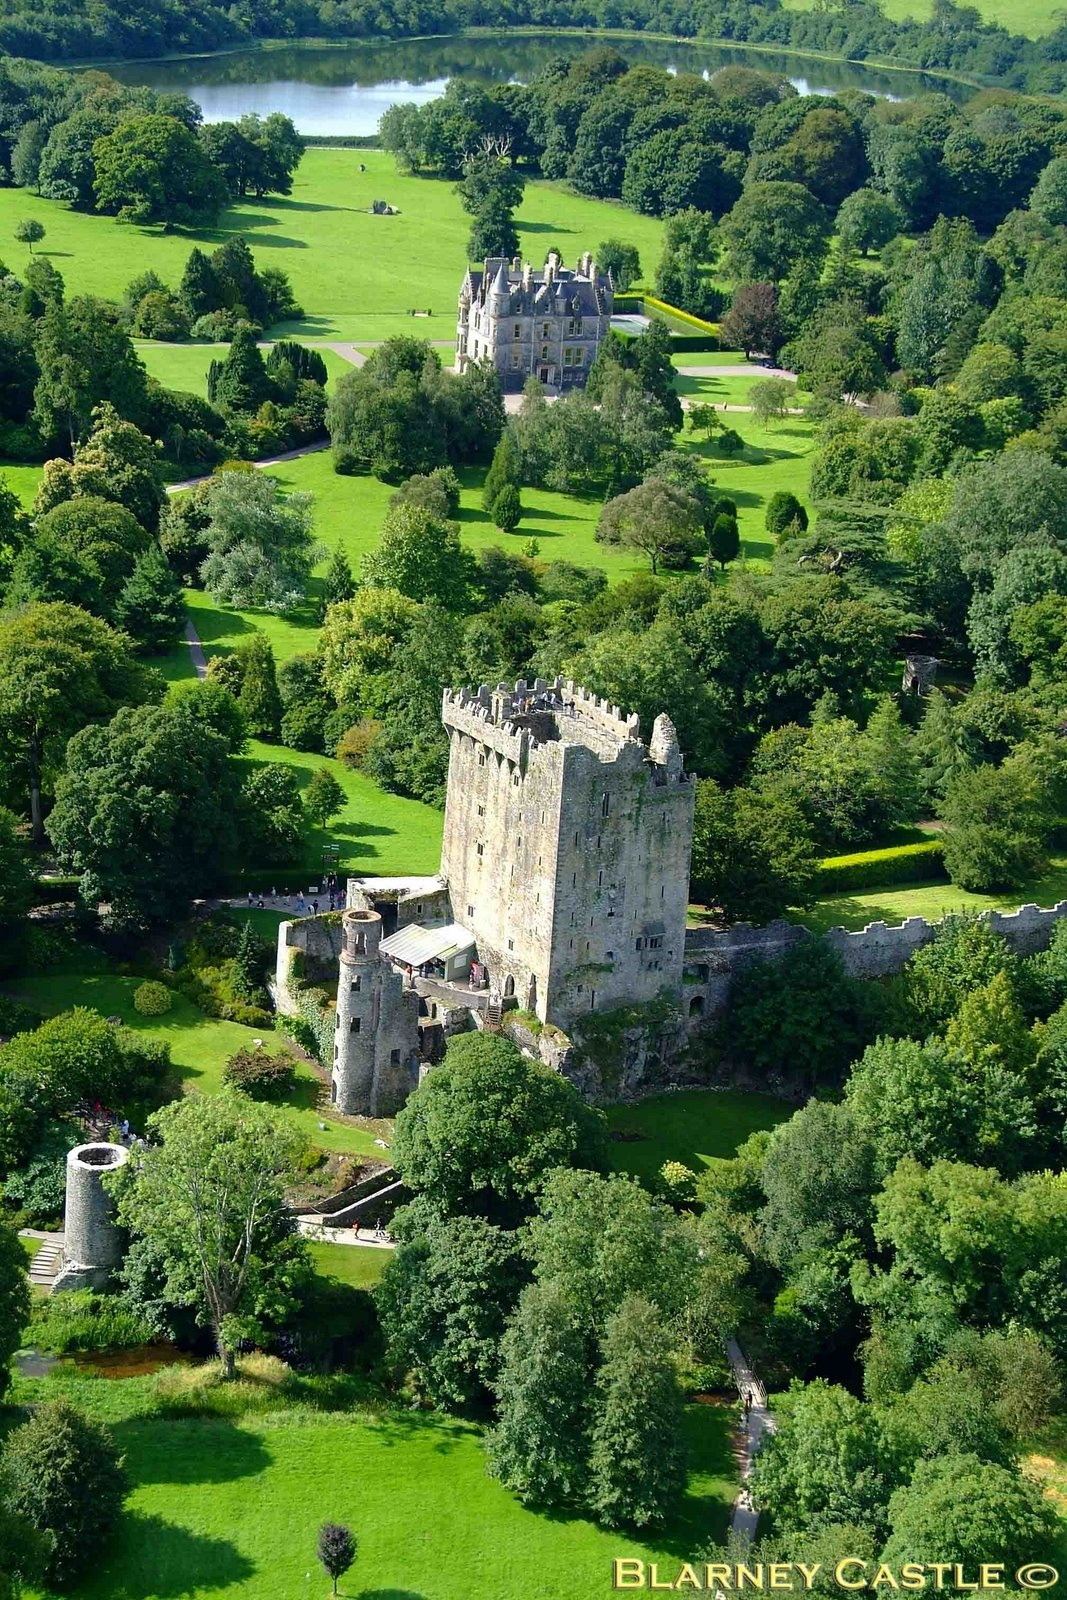 Blarney castle parking